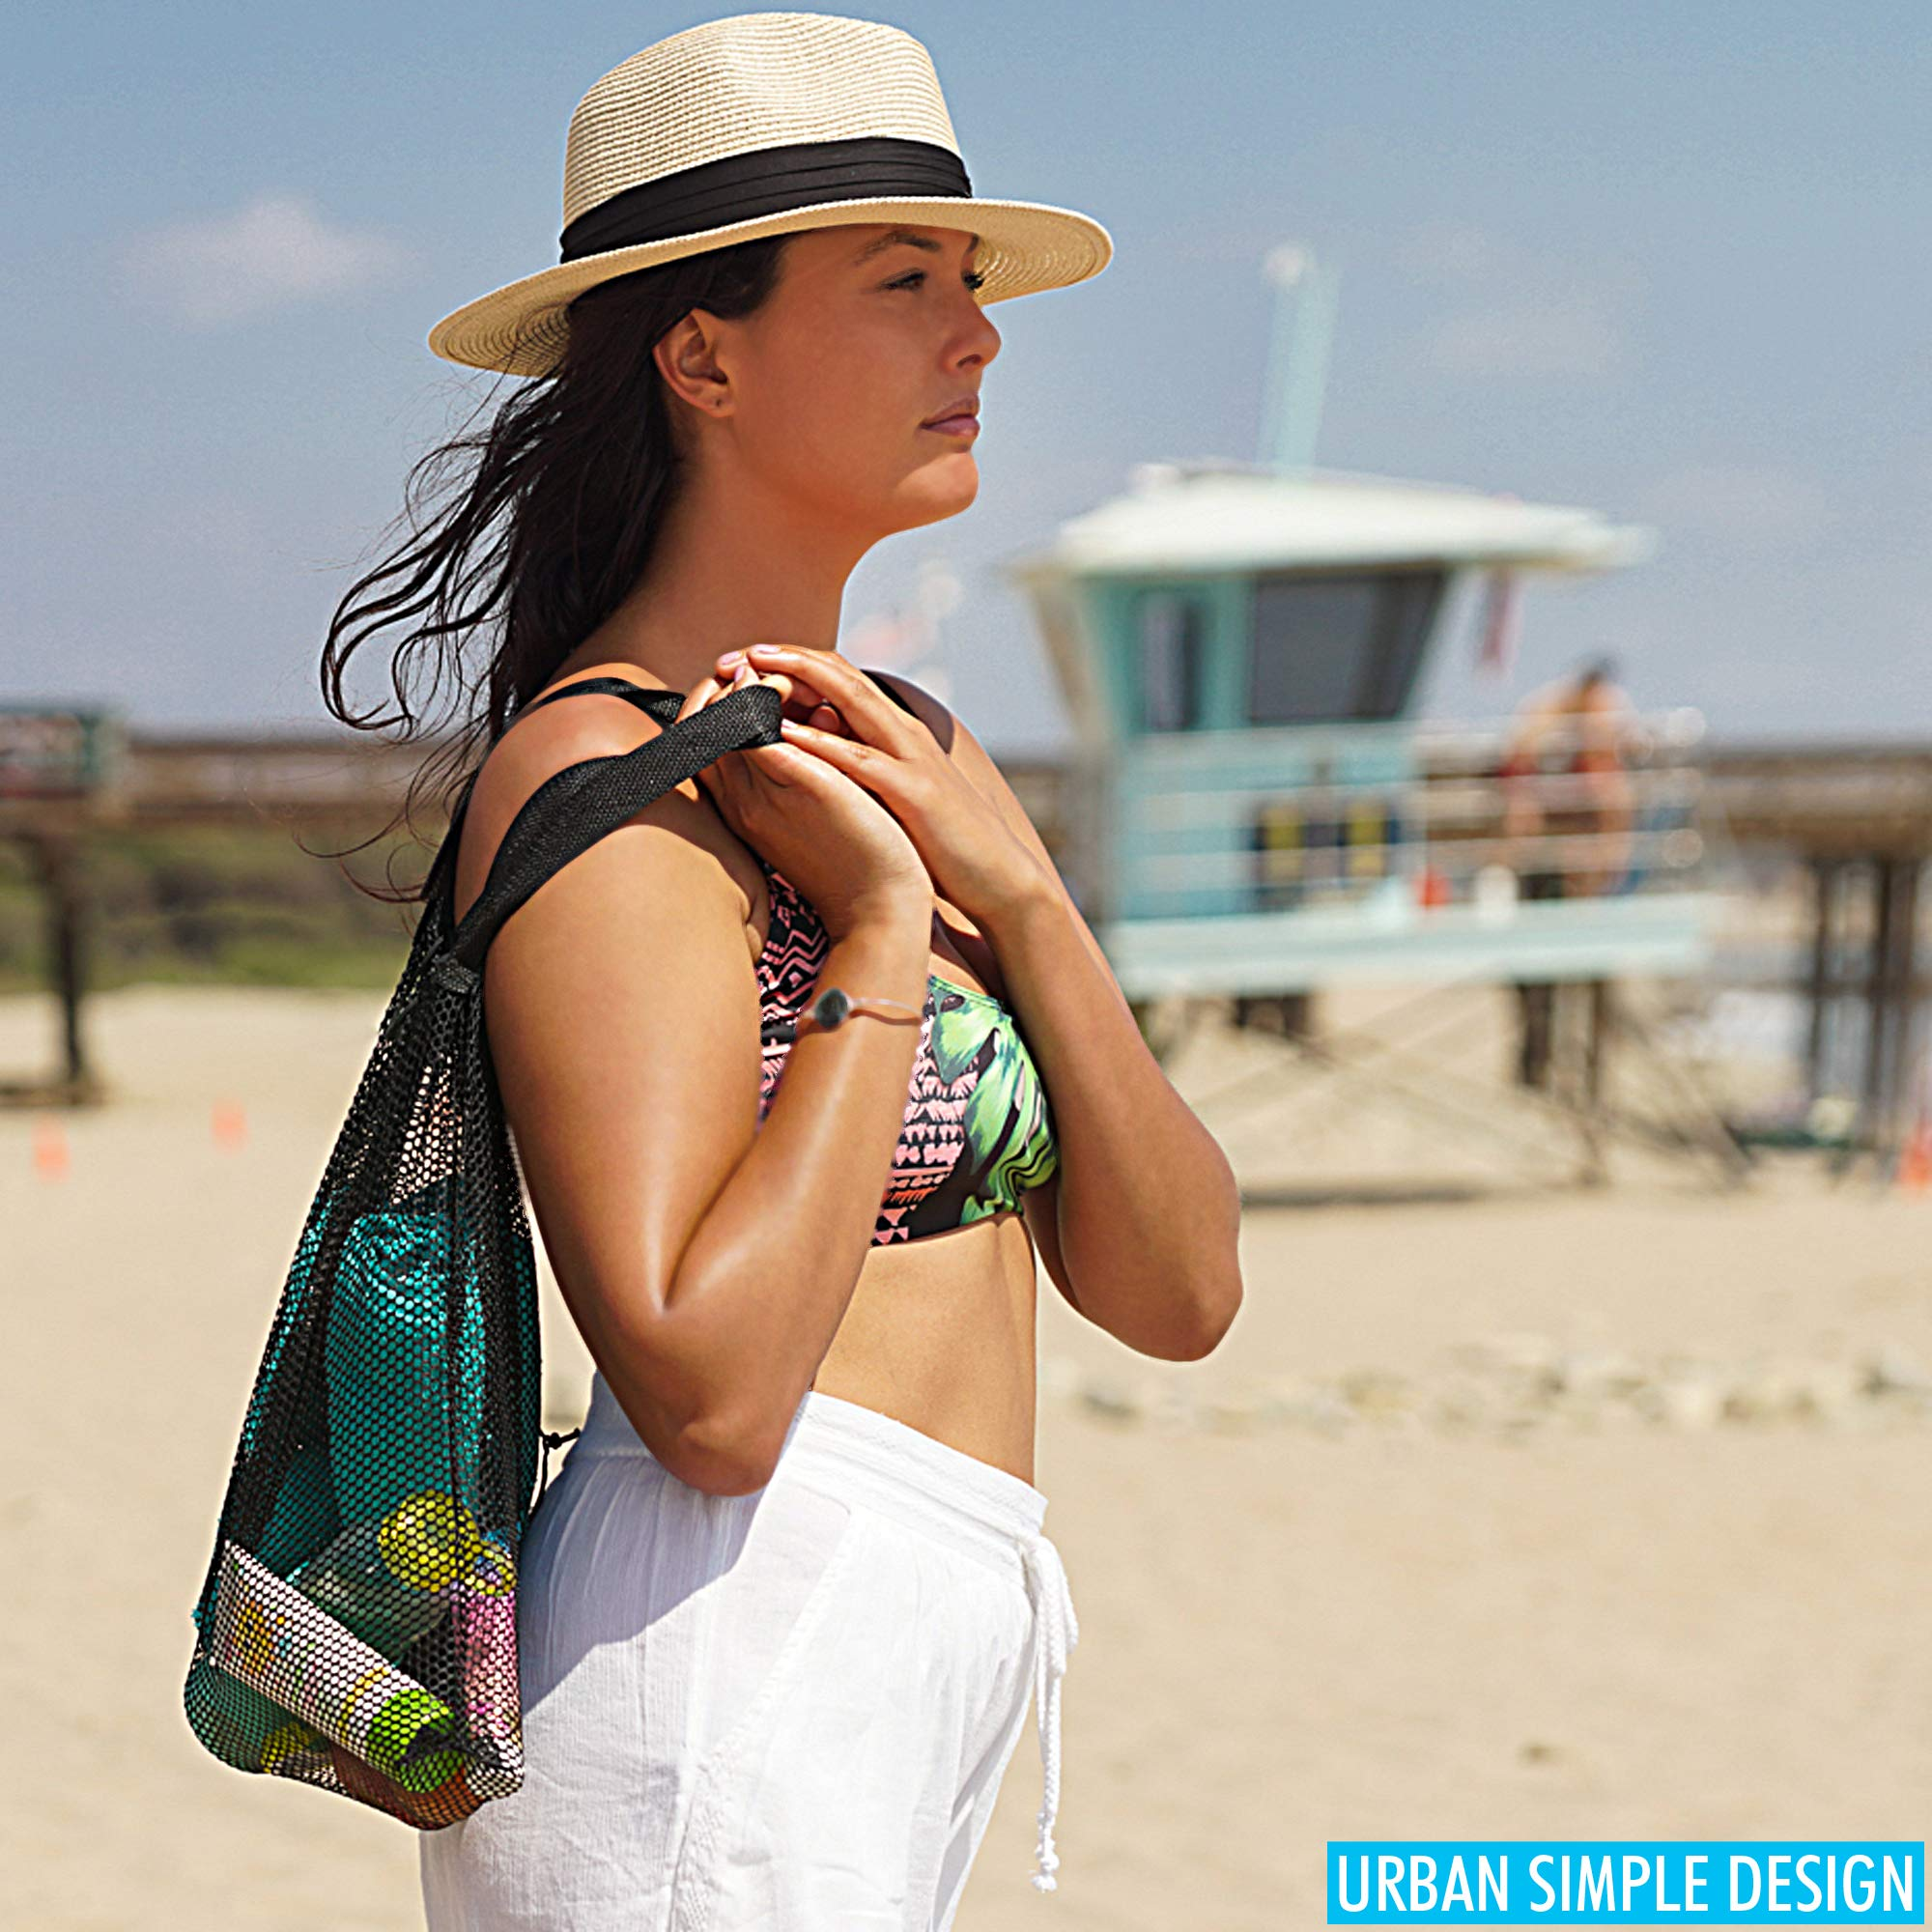 Beach Tote - Gym Bag - Set of 3 with 2 Sizes - Mesh Urban Design for Multi Use by apricot dot (Image #7)